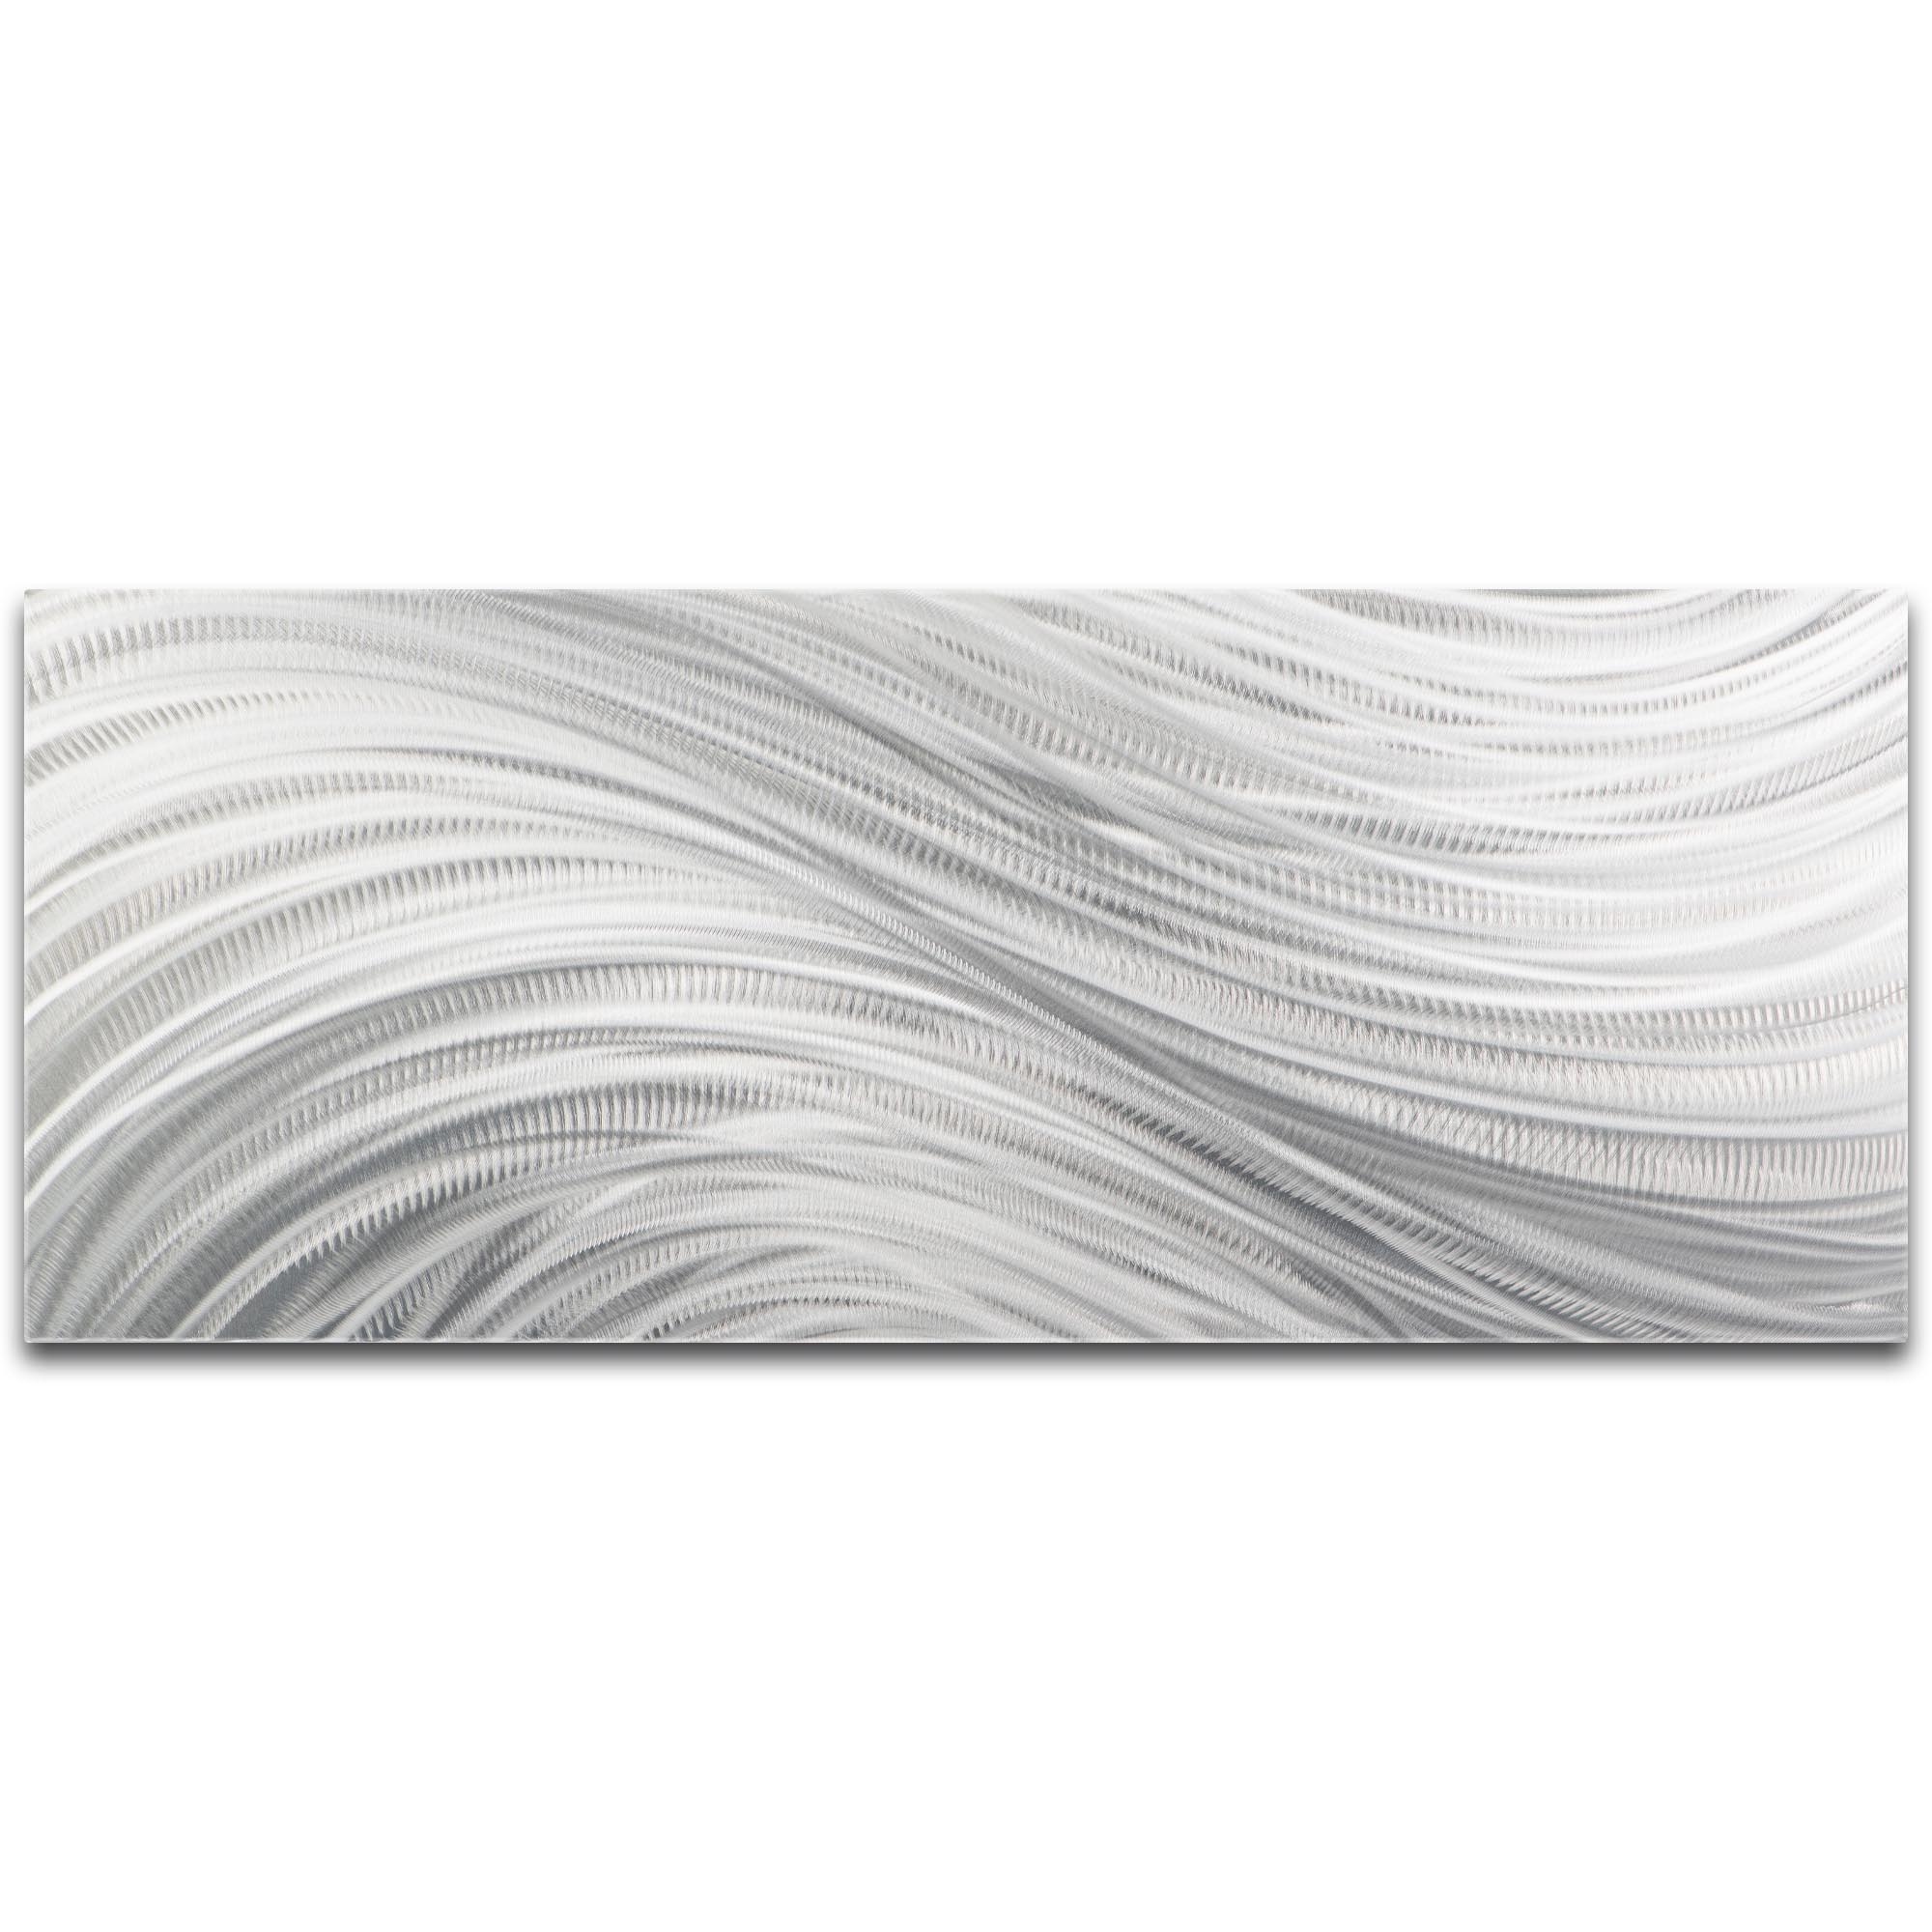 Helena Martin 'Silver Currents' 48in x 19in Original Abstract Metal Art on Ground Metal